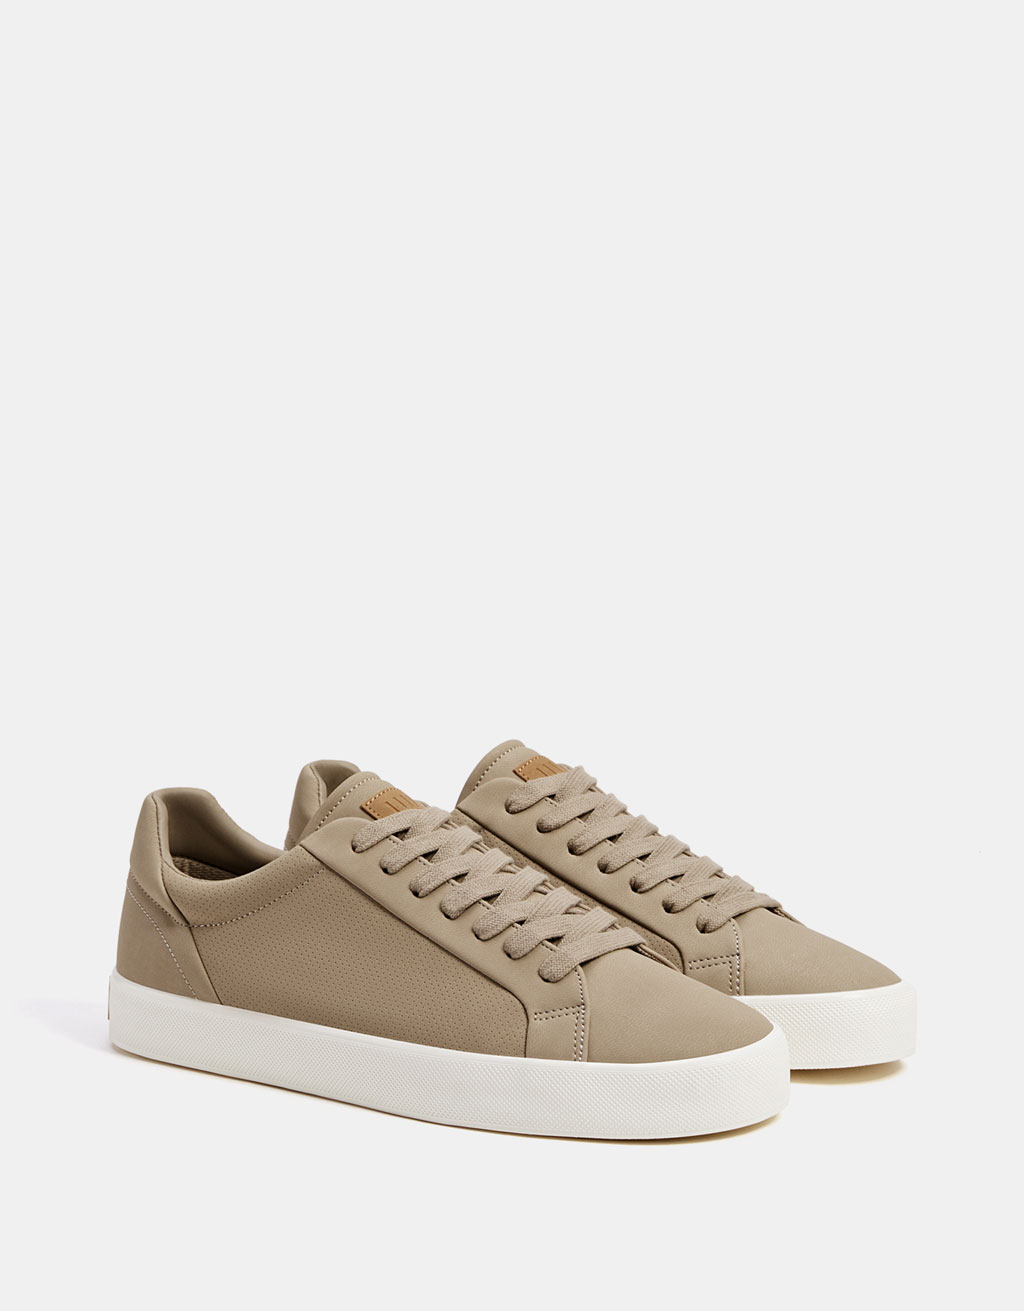 Men's lace-up sneakers with broguing